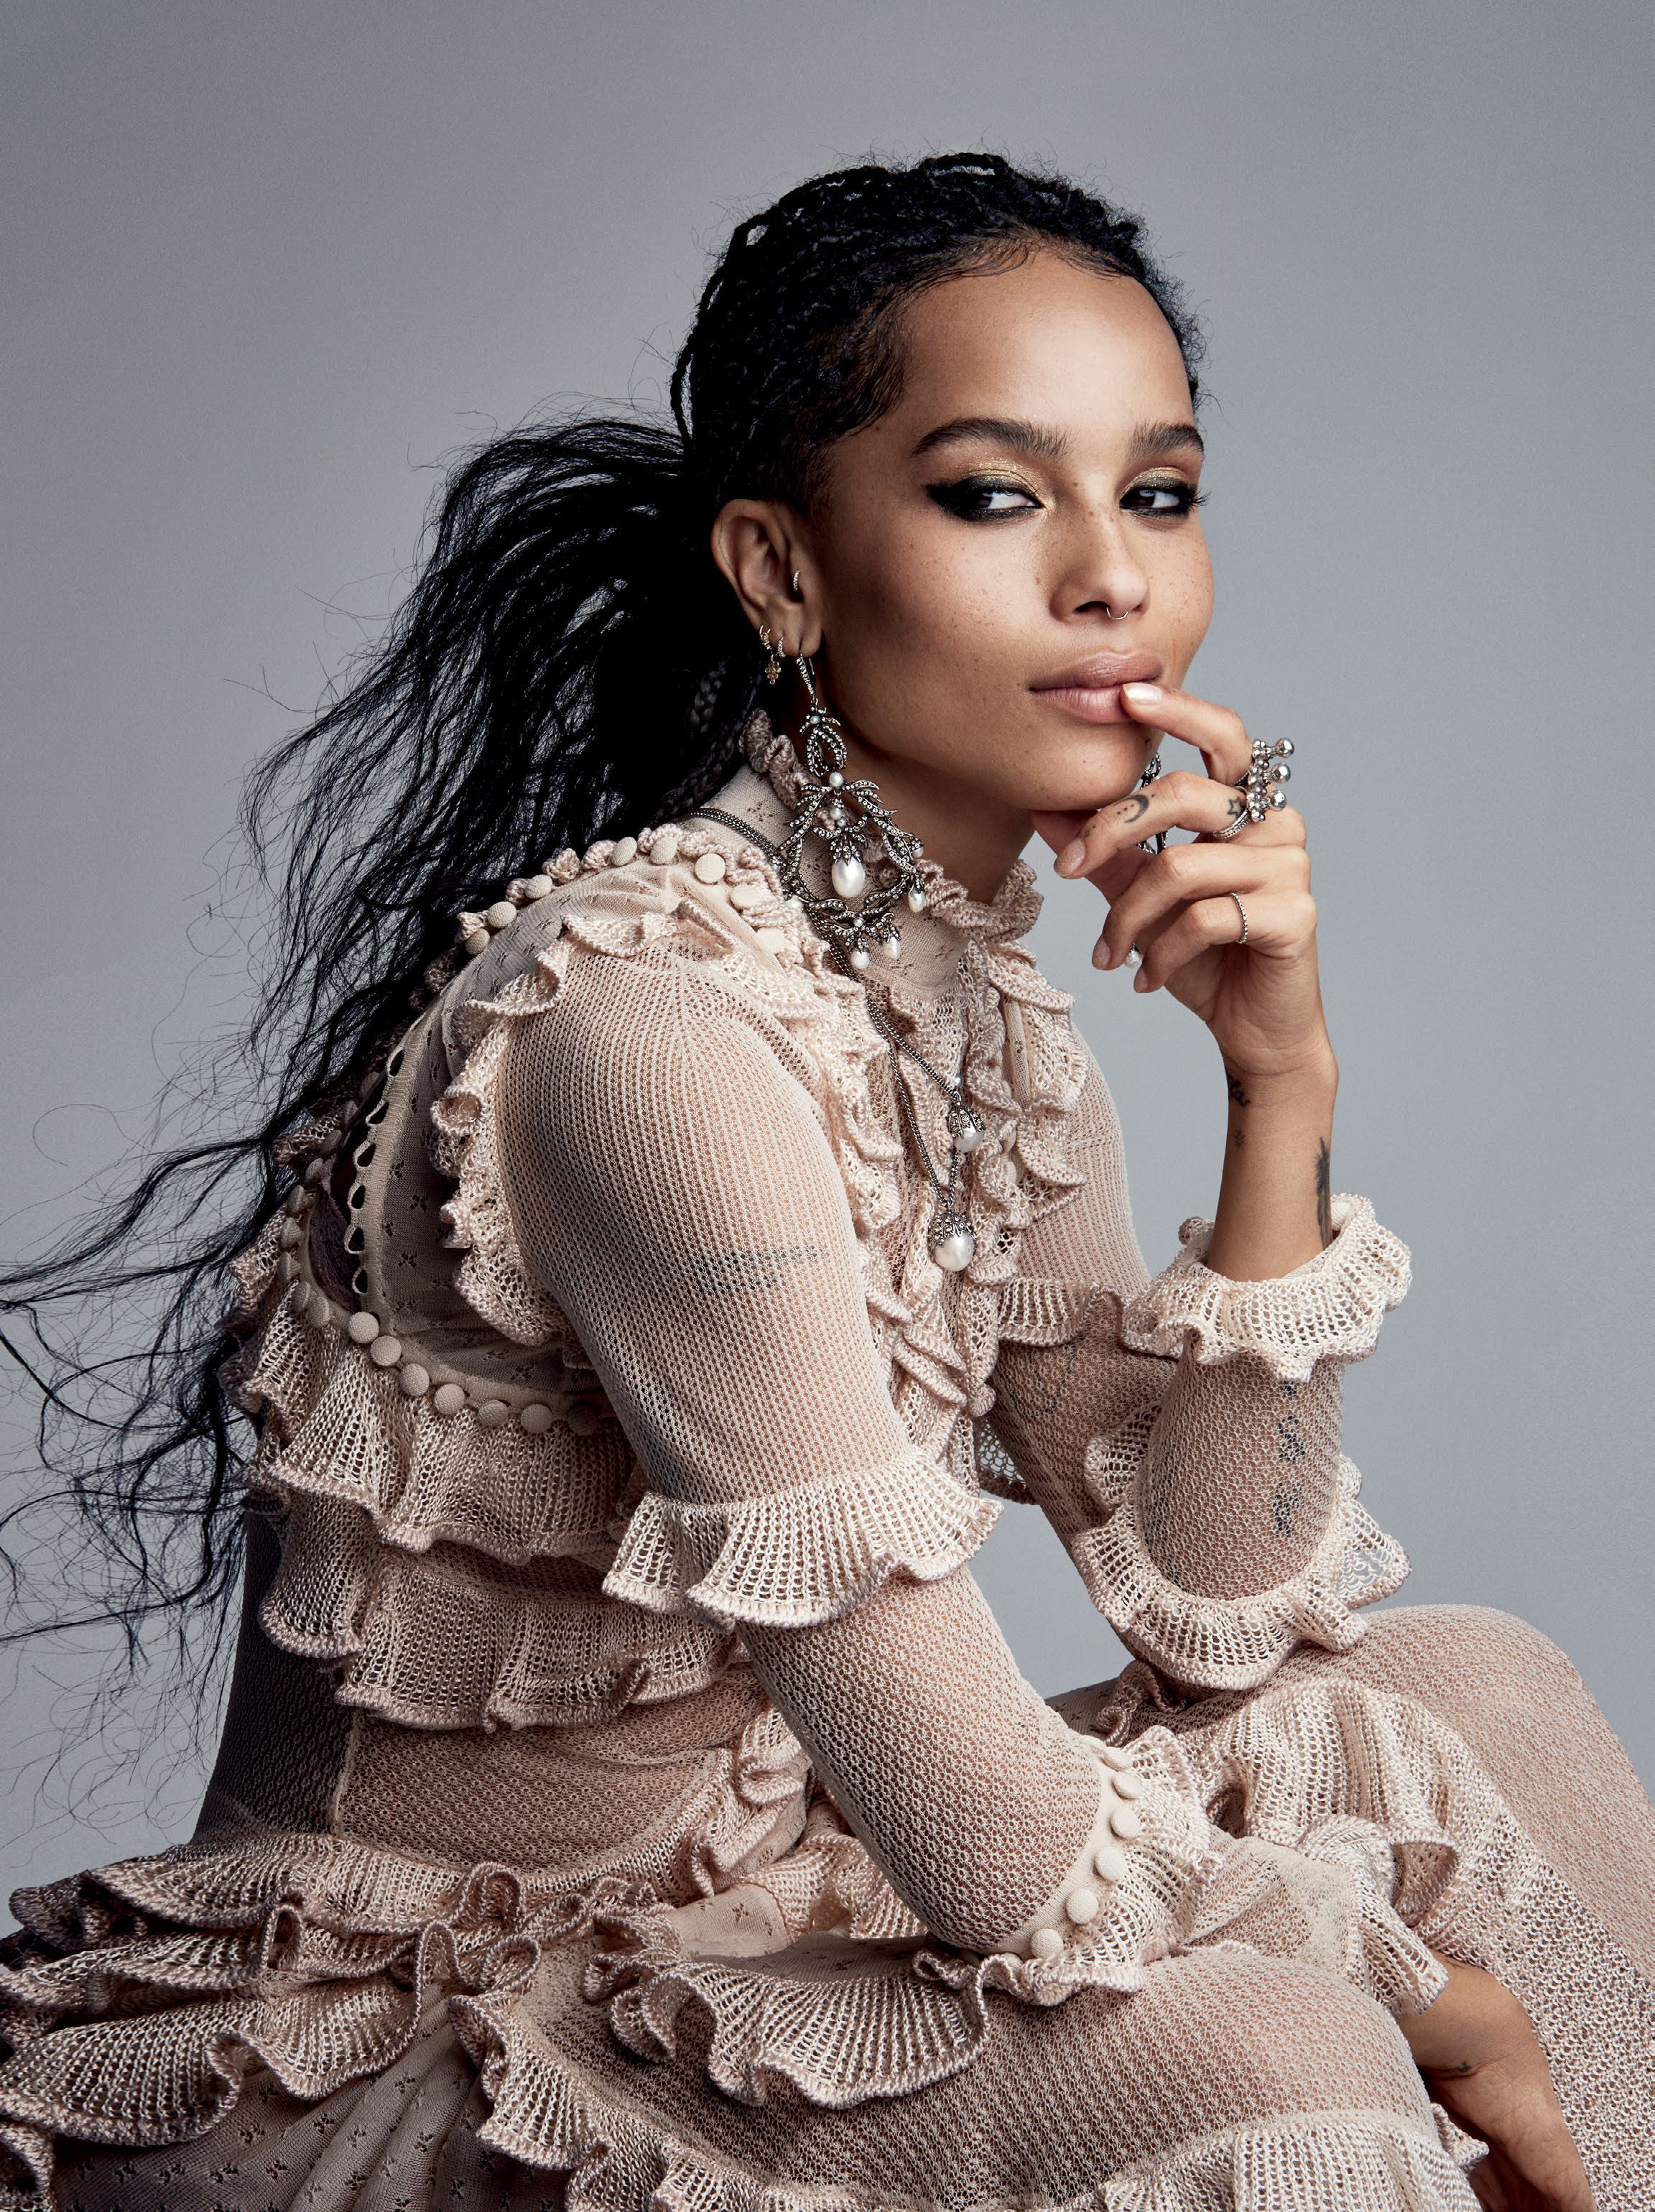 zoe kravitz in us vogue ear to ear photographer patrick zoe kravitz in us vogue 2016 ear to ear photographer patrick de elier